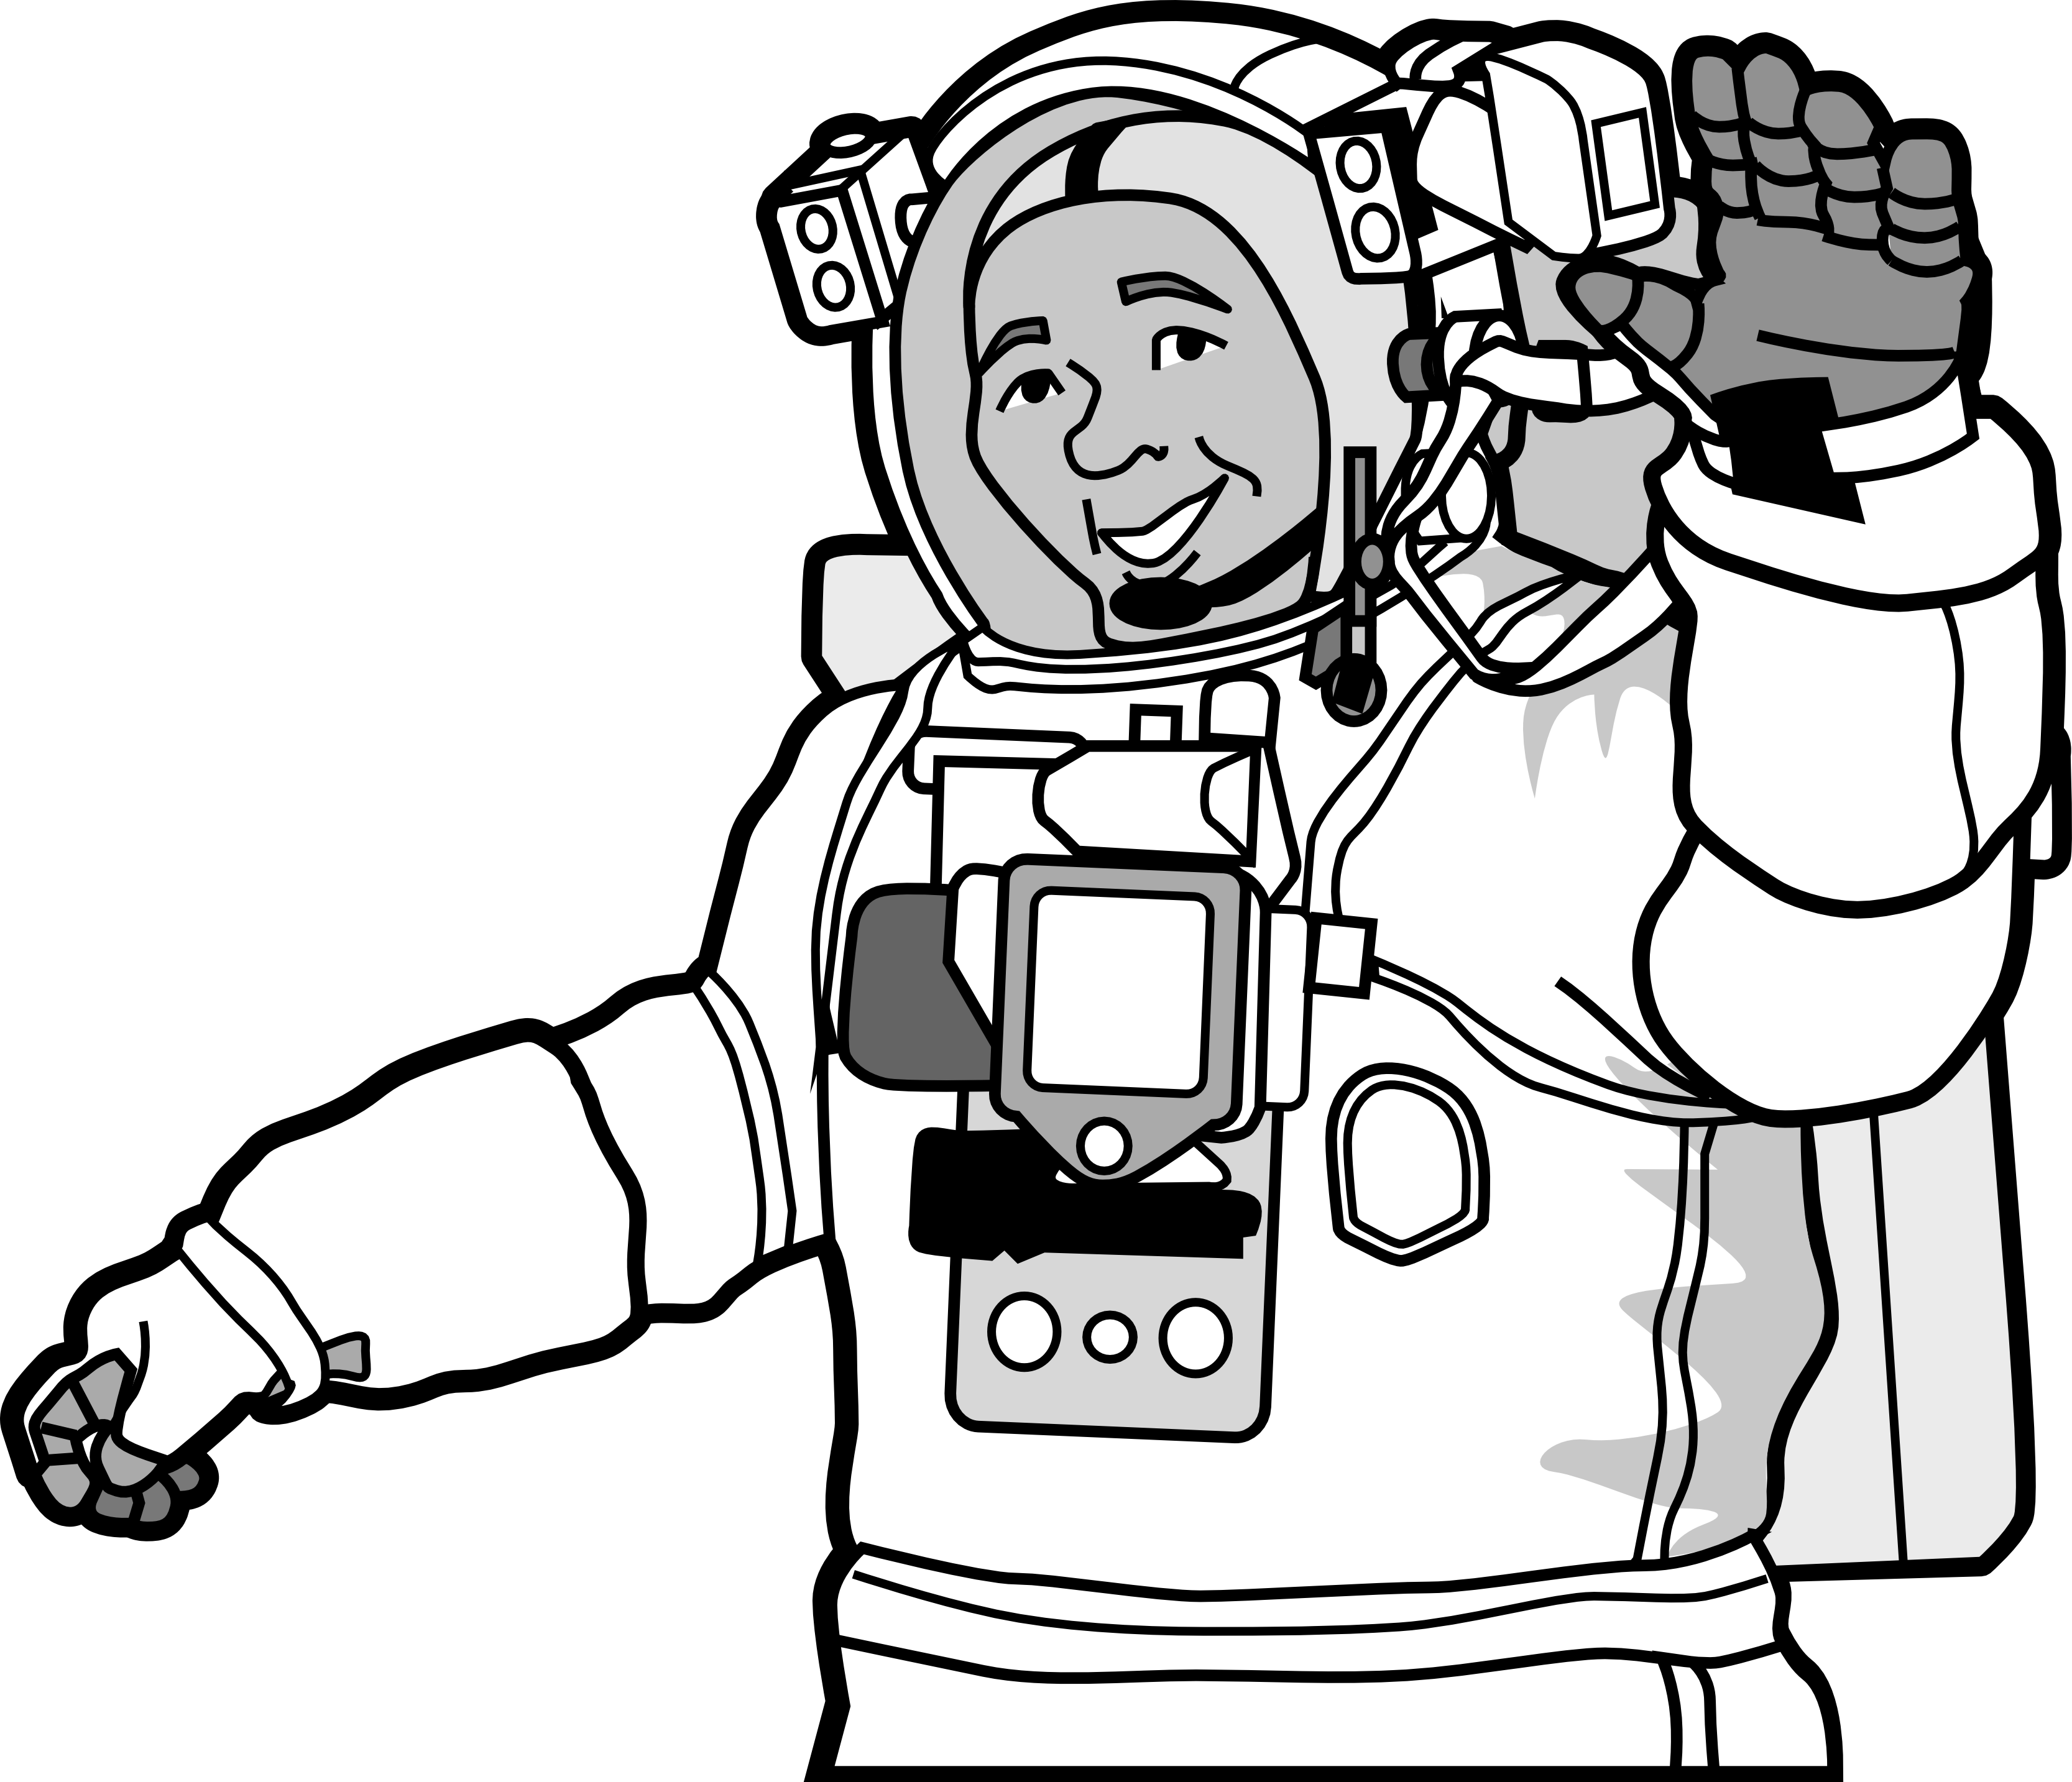 Astronaut clipart black and white clip art transparent library Free Astronaut Clipart Black And White, Download Free Clip Art, Free ... clip art transparent library